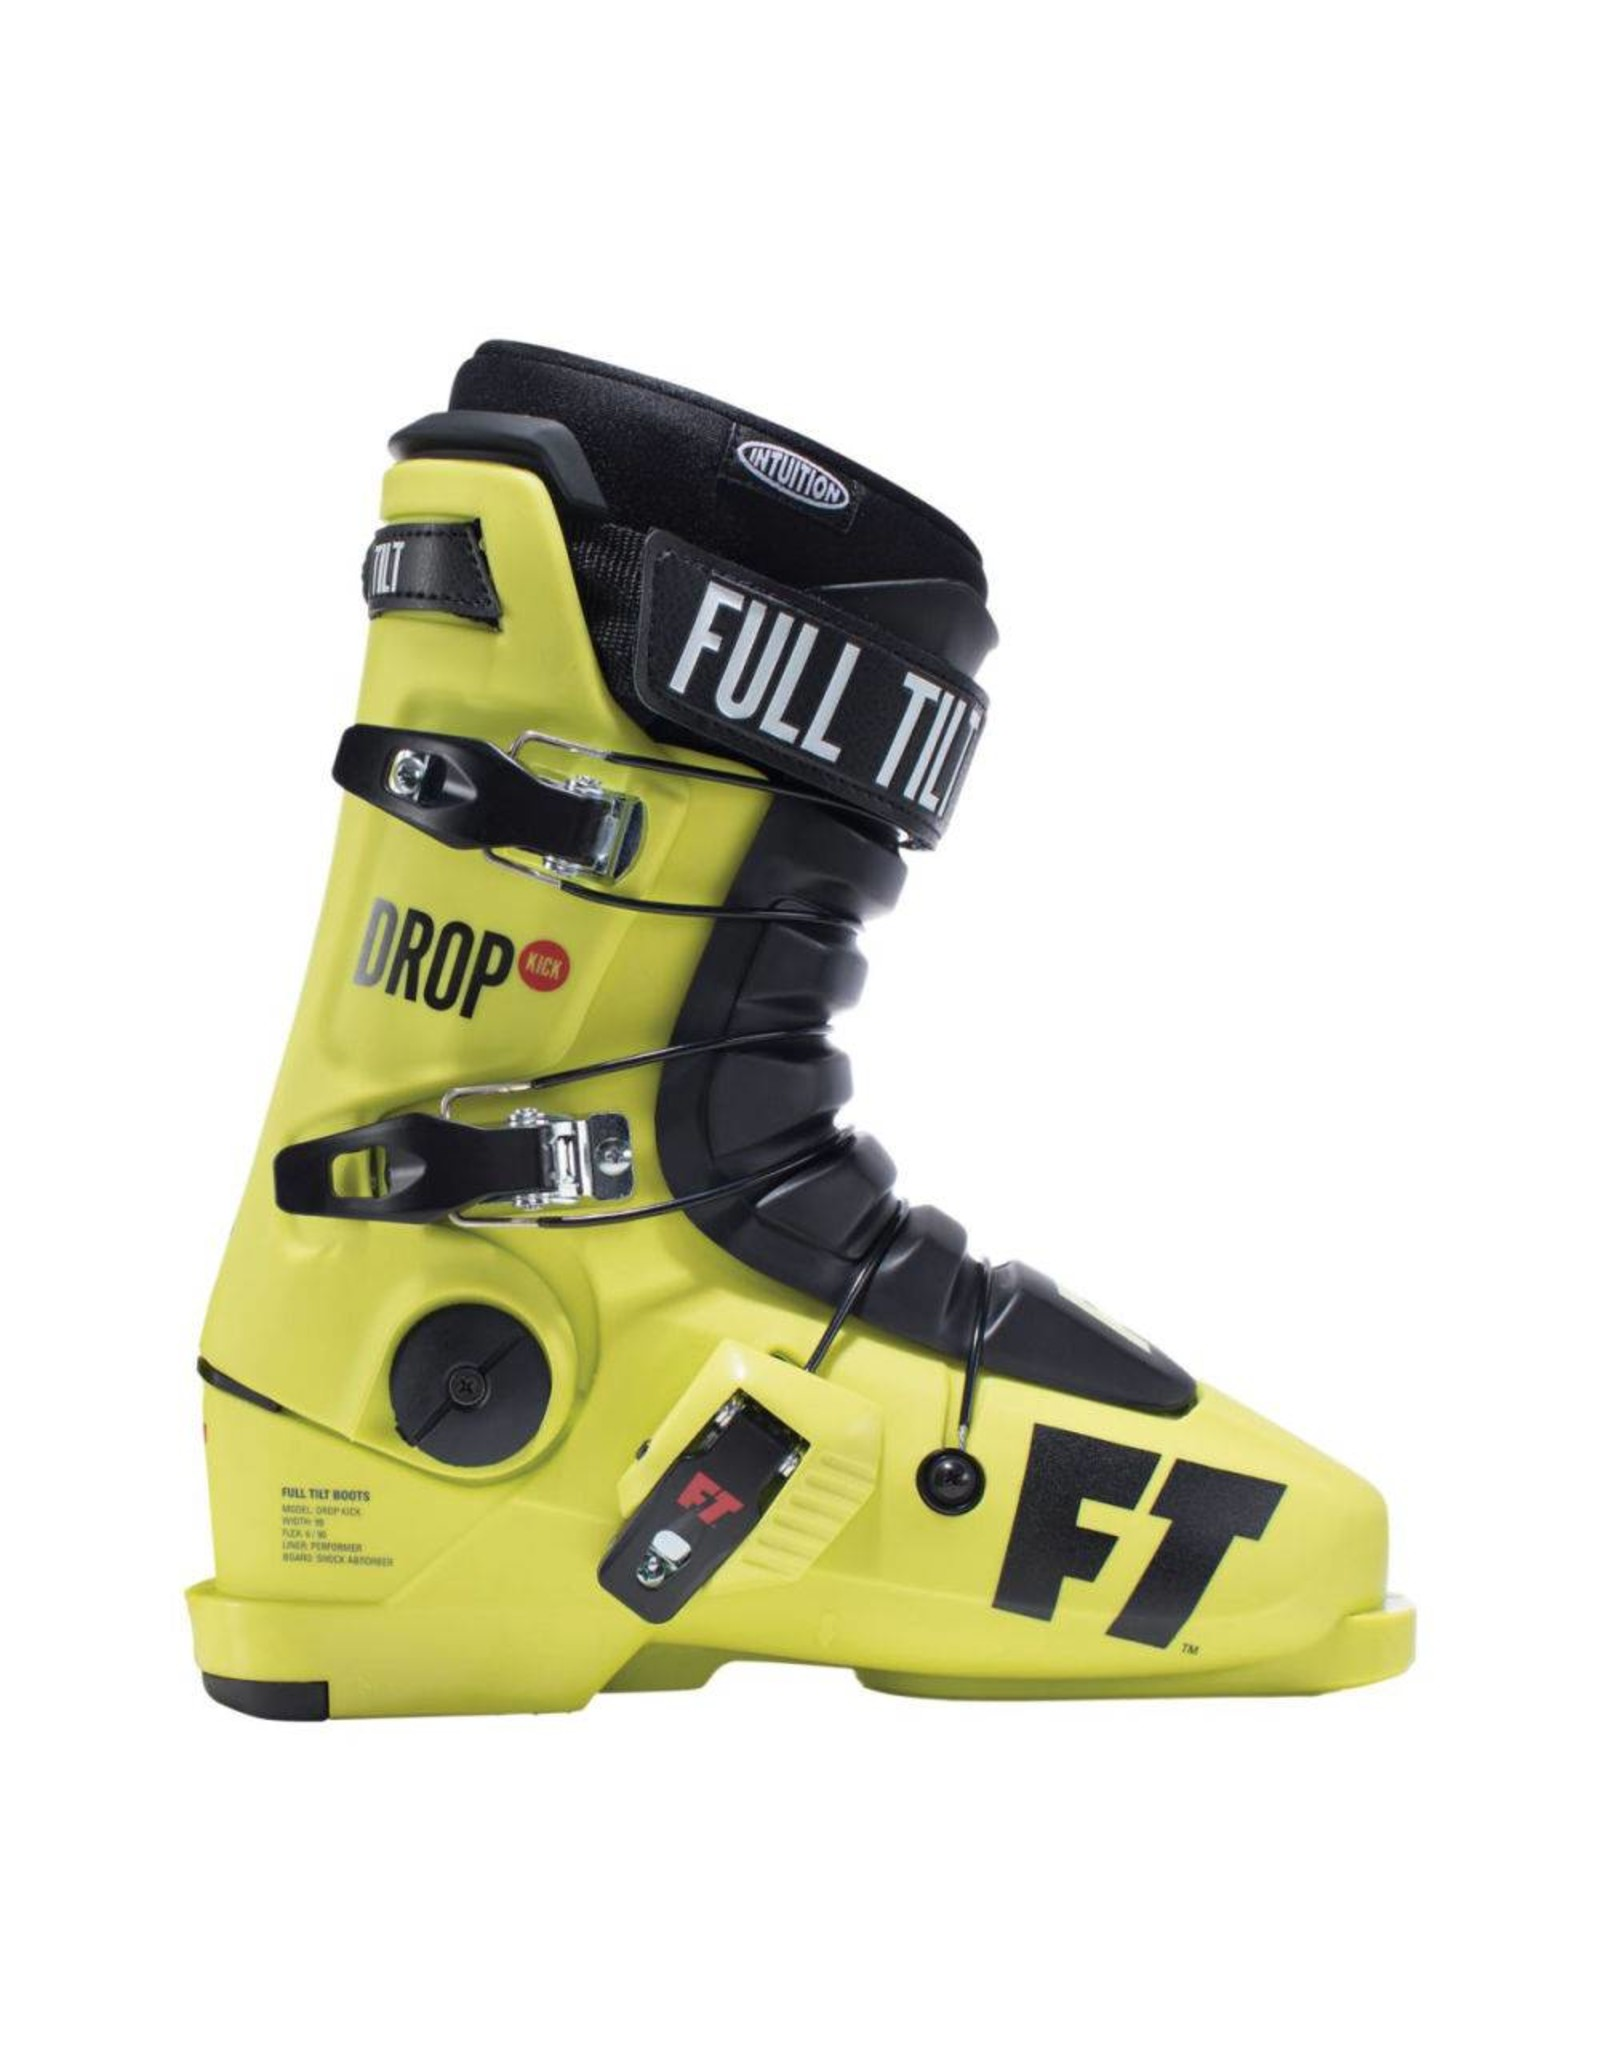 Full Tilt Full Tilt Men's Drop Kick Ski Boot 2019